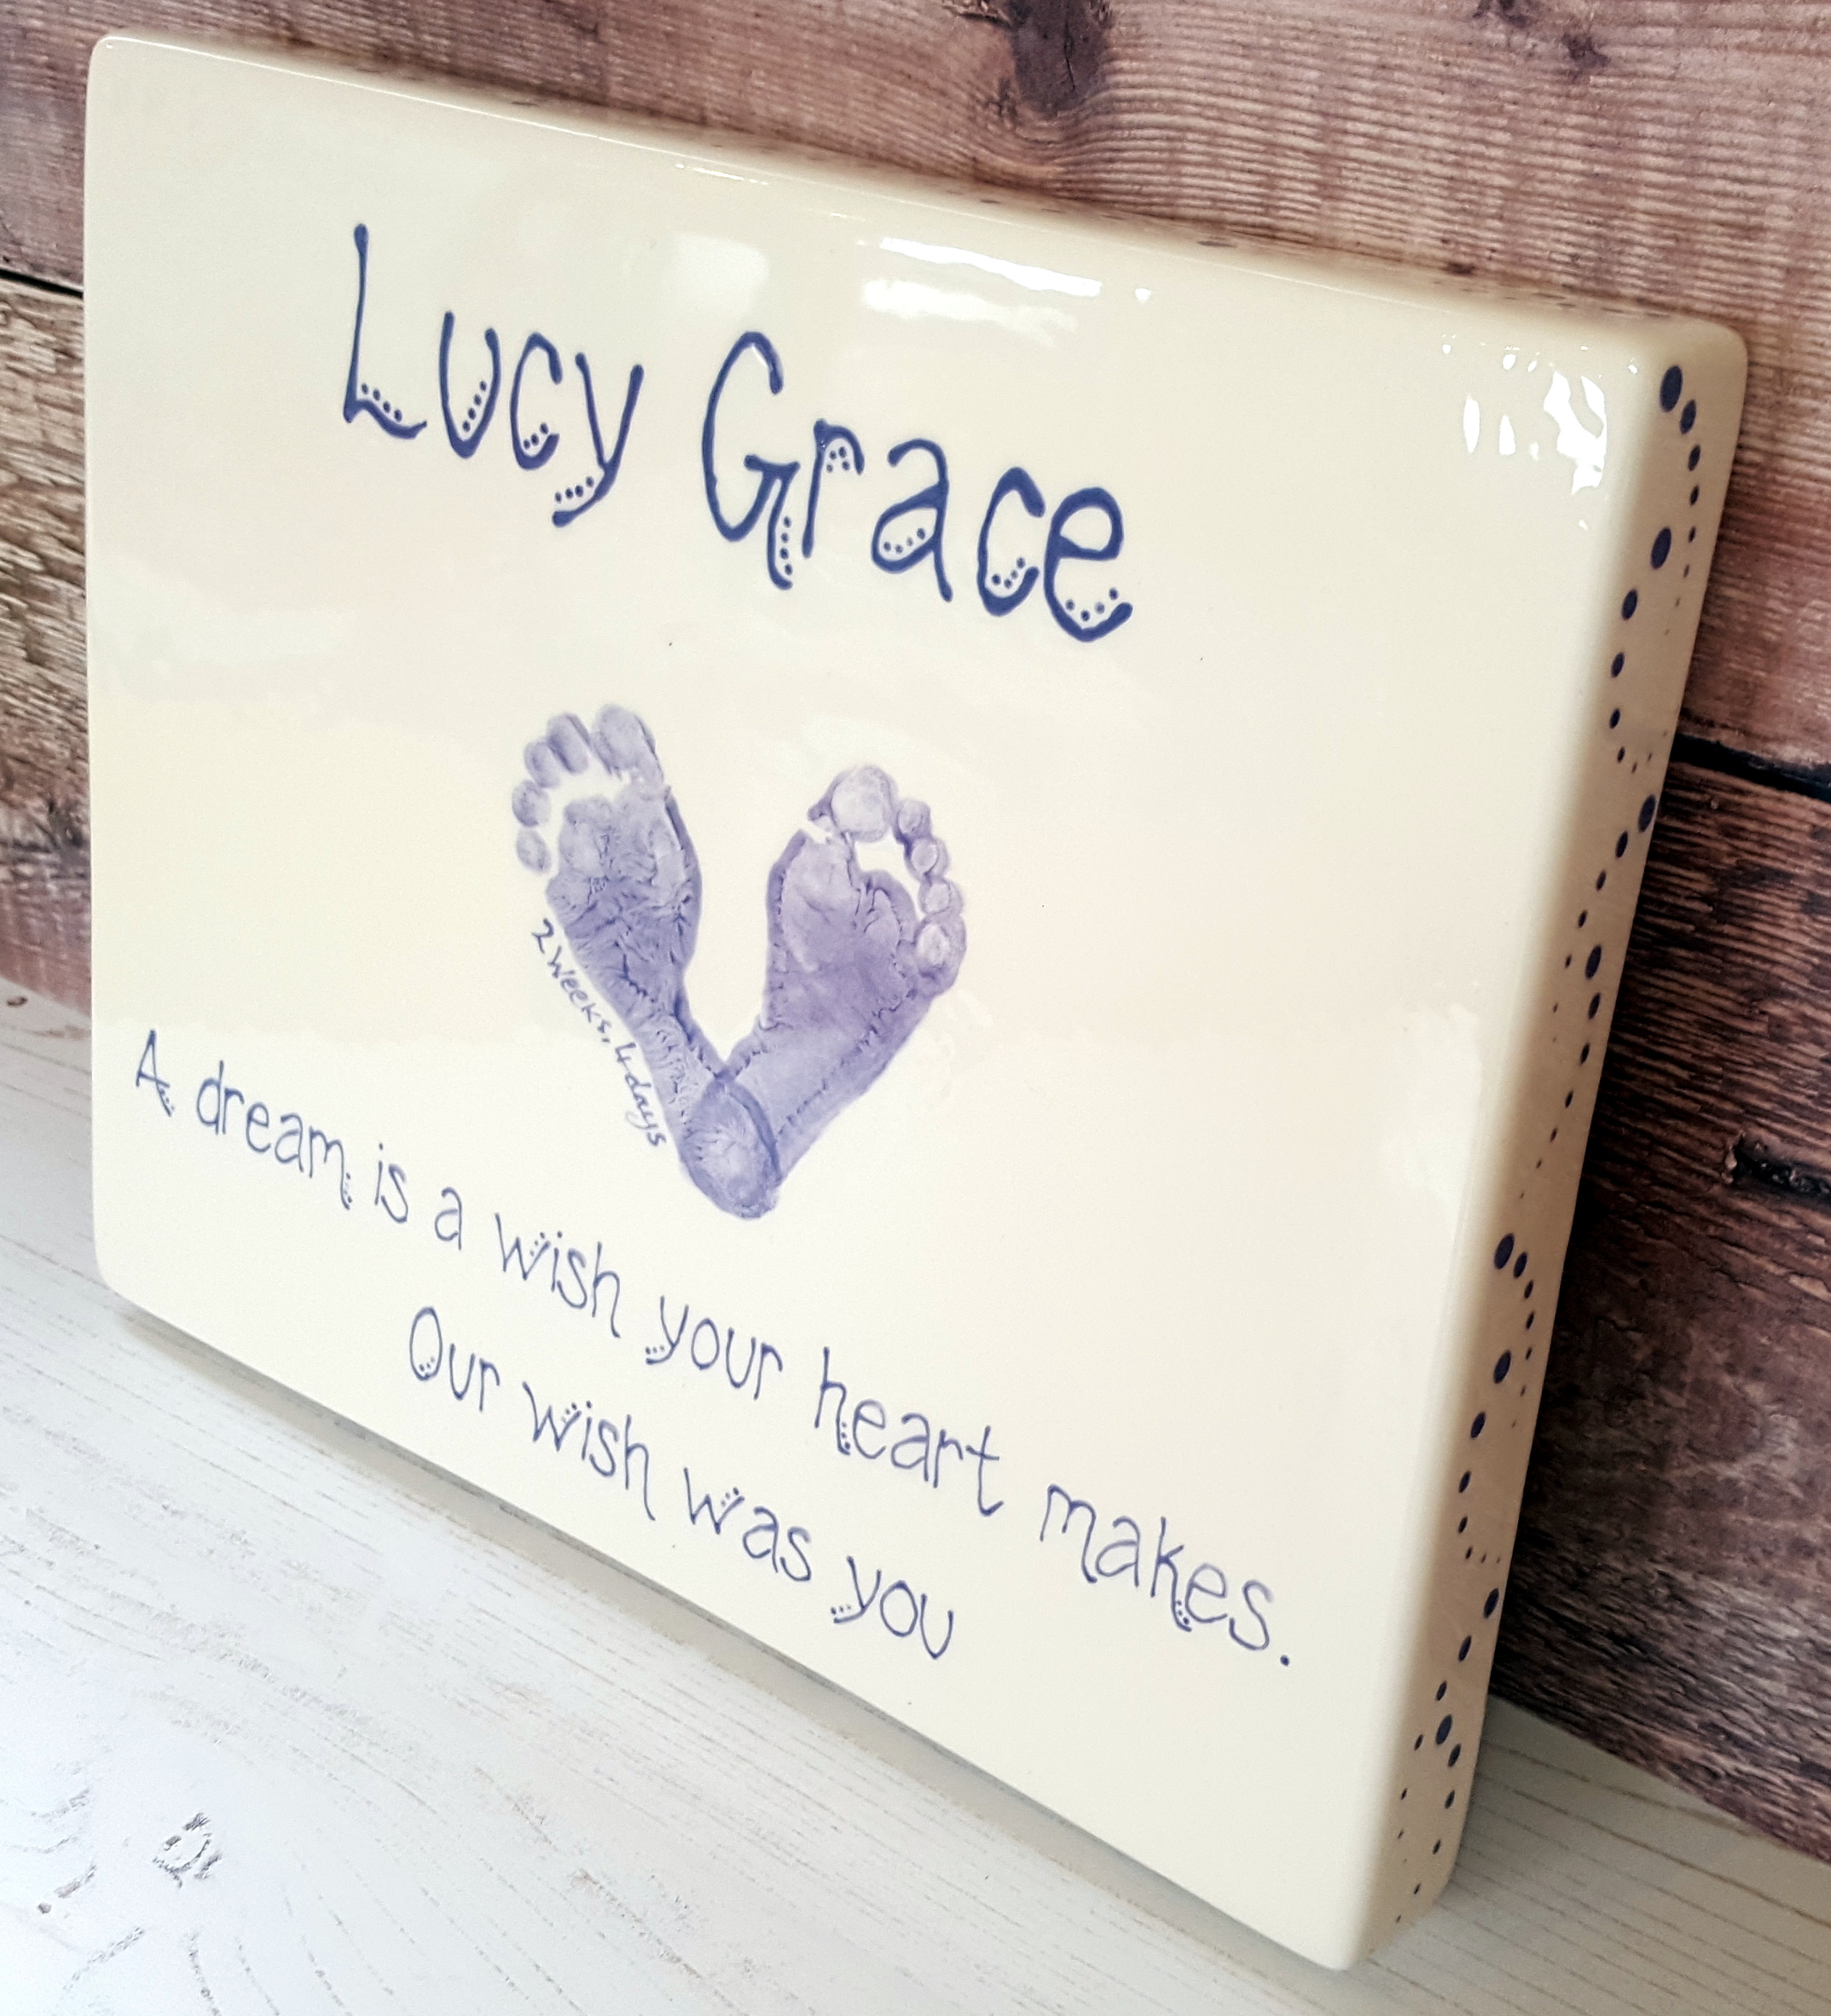 Ceramic Canvas - Lucy Grace - a Dream is a wish - Side View